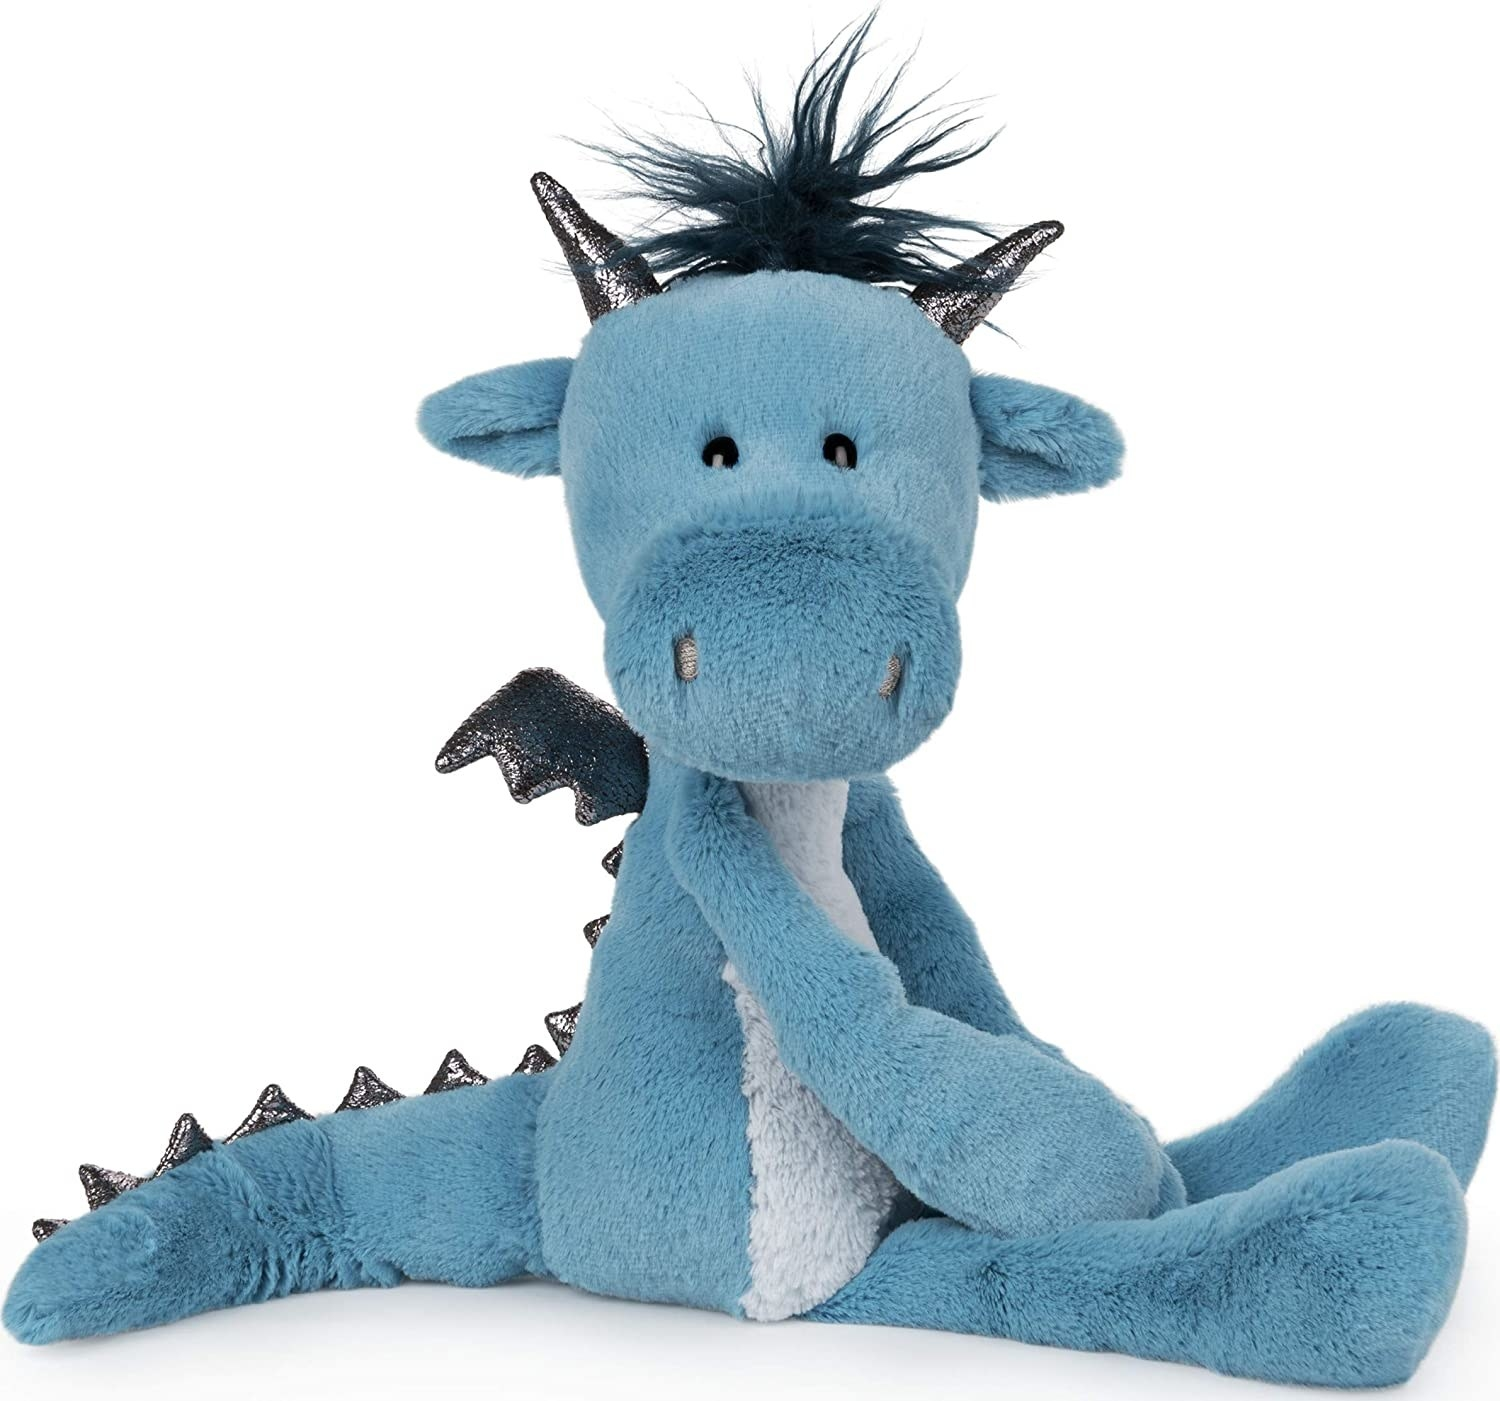 Blue stuffed dragon with sparkly wings and horns